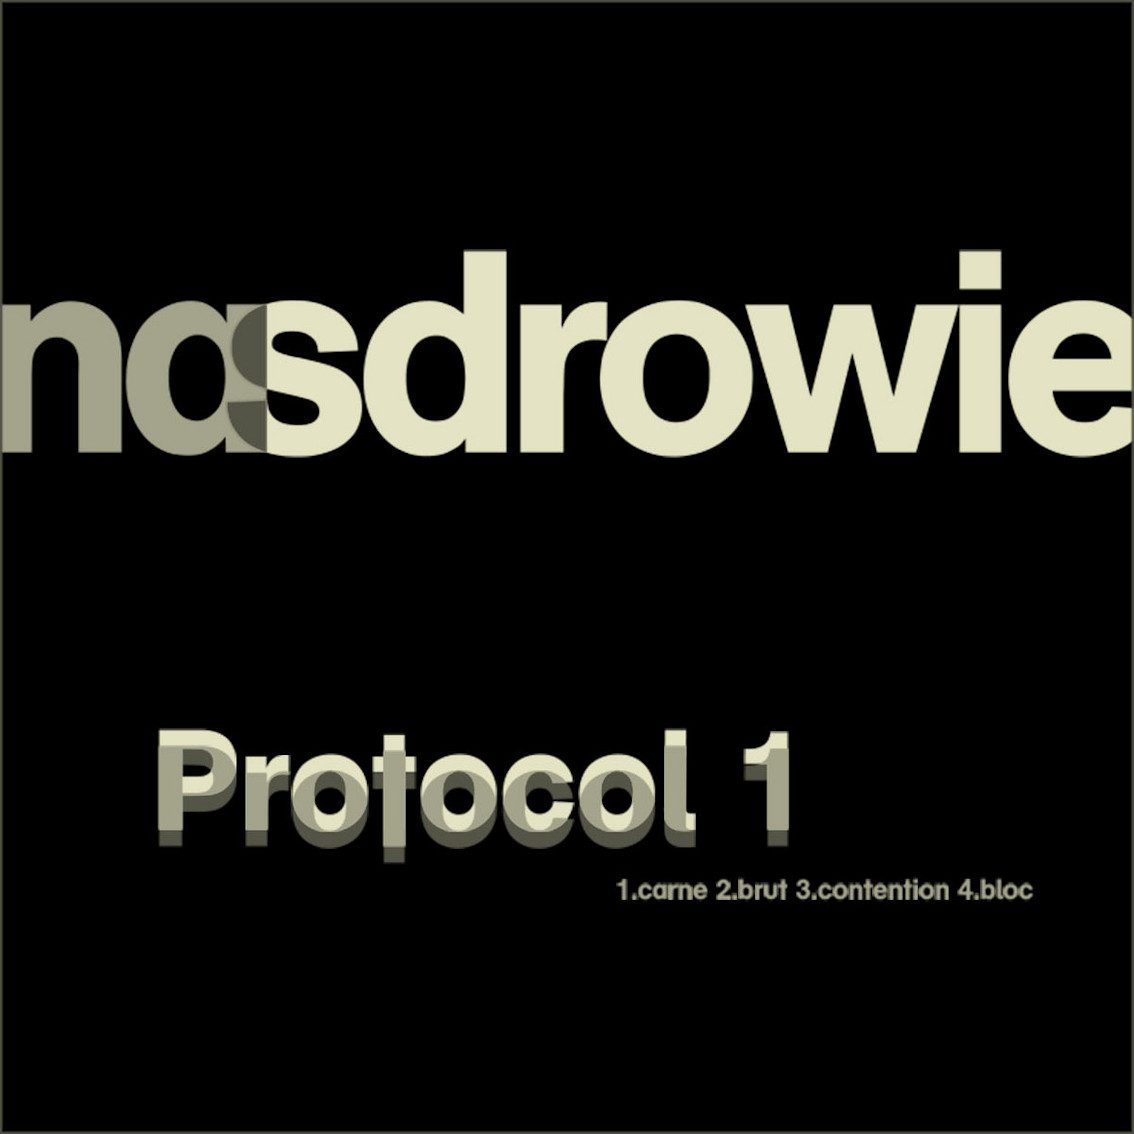 Nasdrowie debates with techno EBM EP 'Protocol 1' and it's excellent!